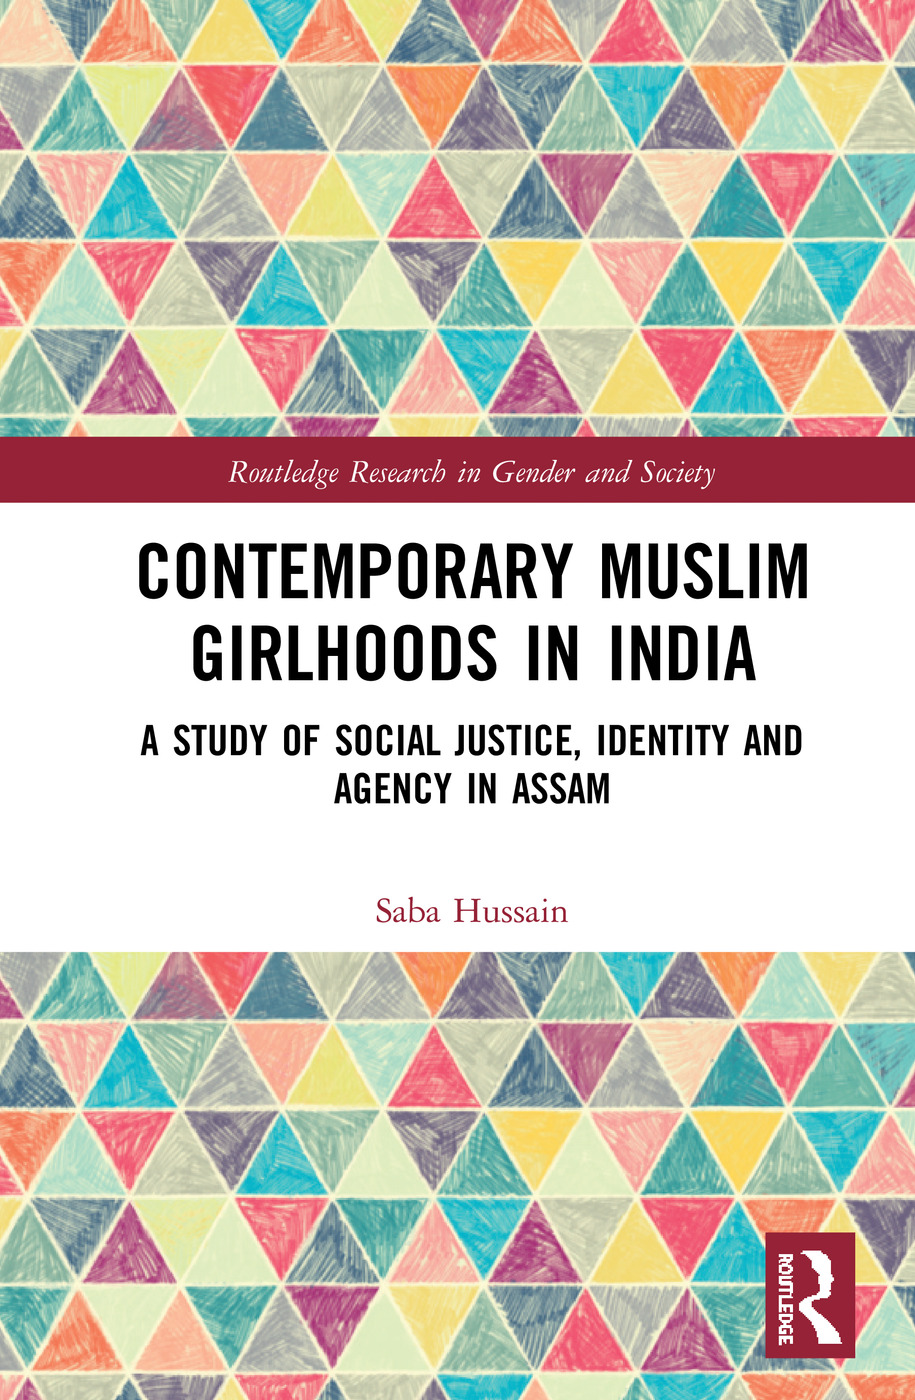 Contemporary Muslim Girlhoods in India: A Study of Social Justice, Identity and Agency in Assam book cover